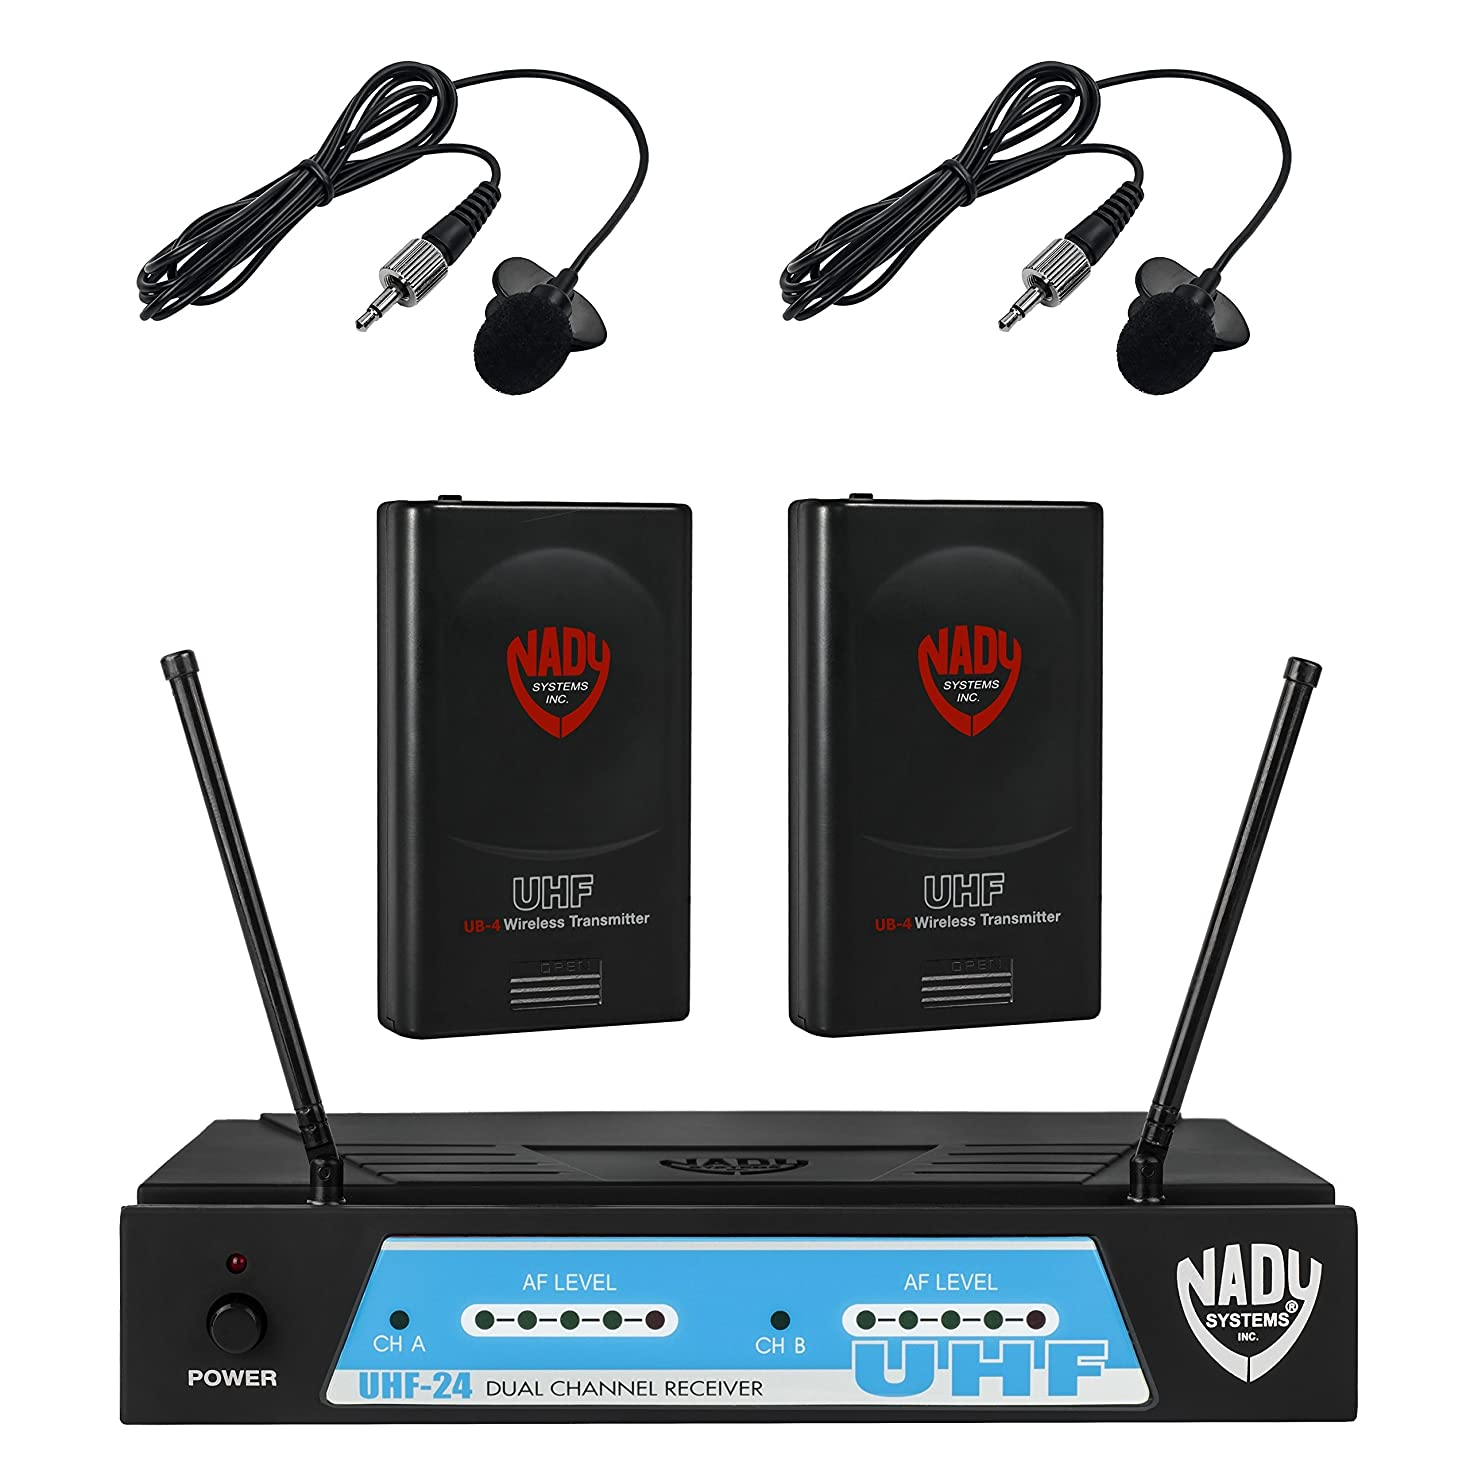 Nady UHF-24 Wireless Dual Lapel/Lavalier Microphone System with True Diversity